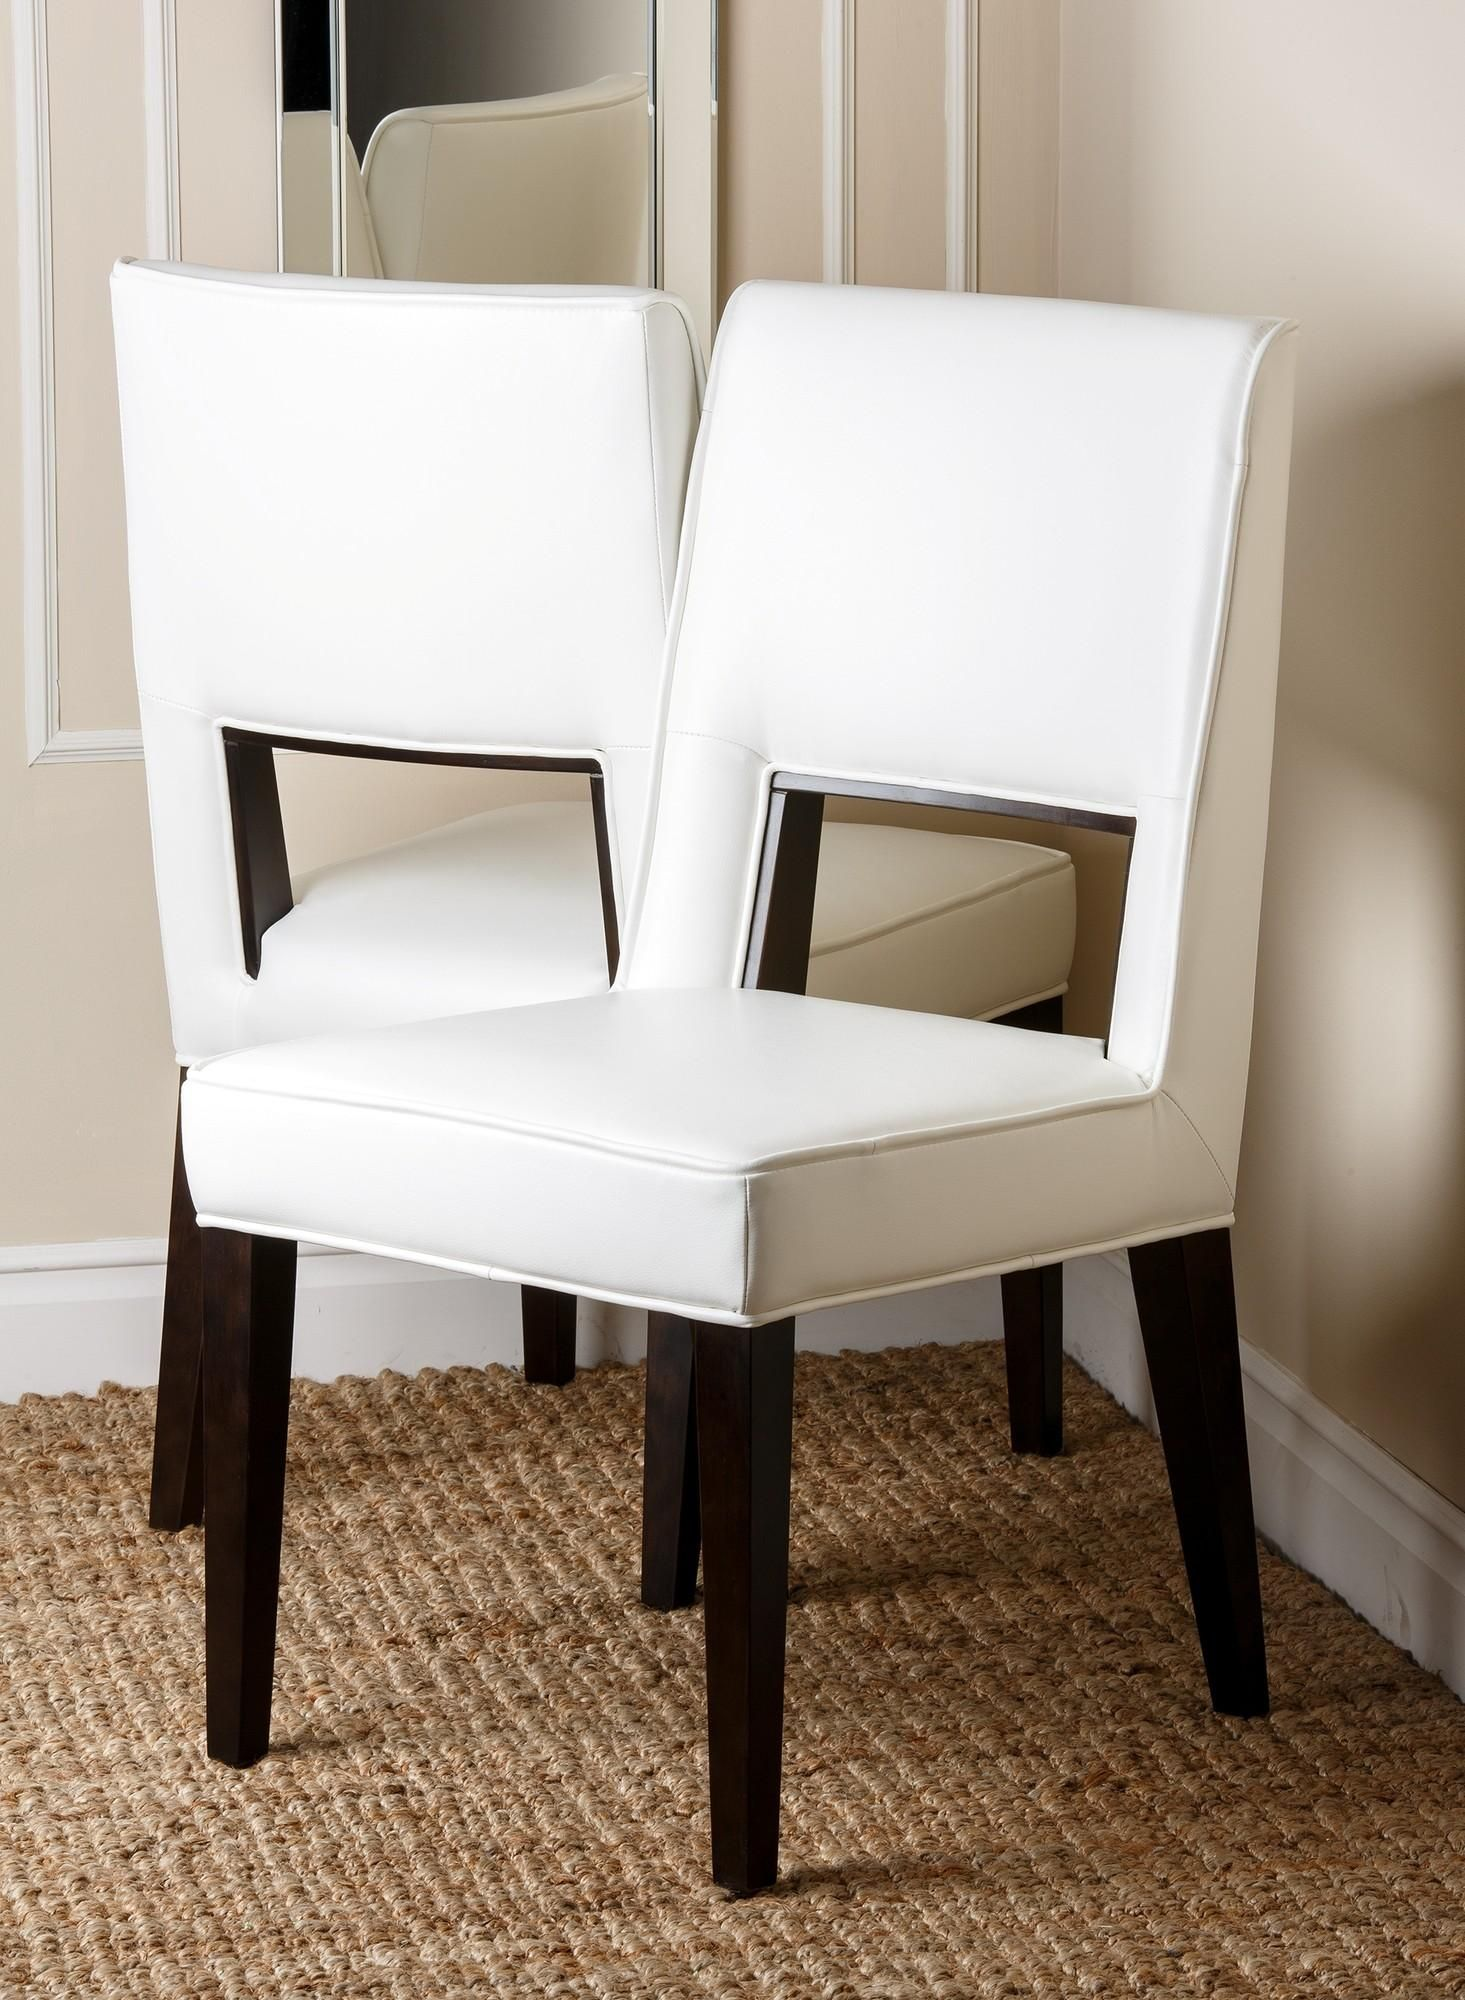 Awe Inspiring Suix Leather Dining Chair Set Of 2 By Abbyson Living Ibusinesslaw Wood Chair Design Ideas Ibusinesslaworg